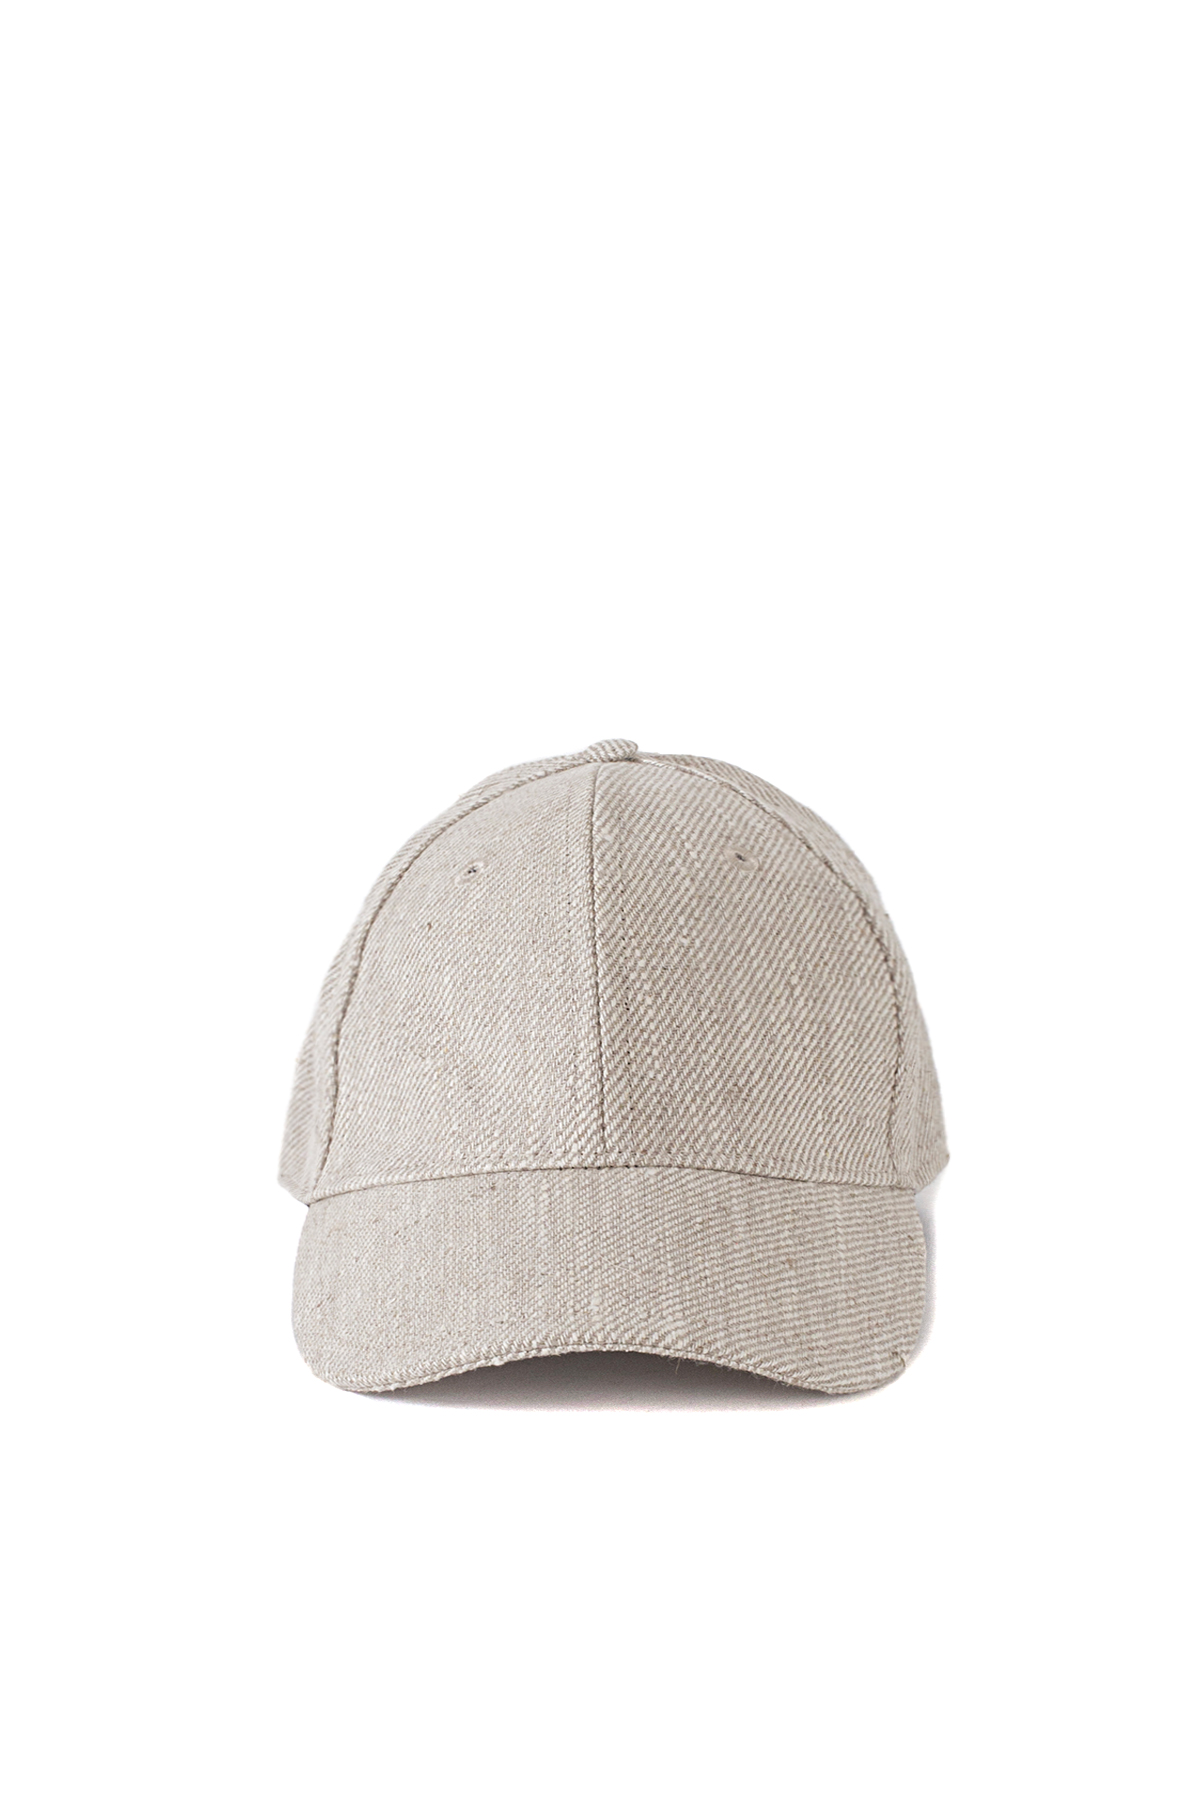 OVERHEAD : Herringbone 6 Panel Cap